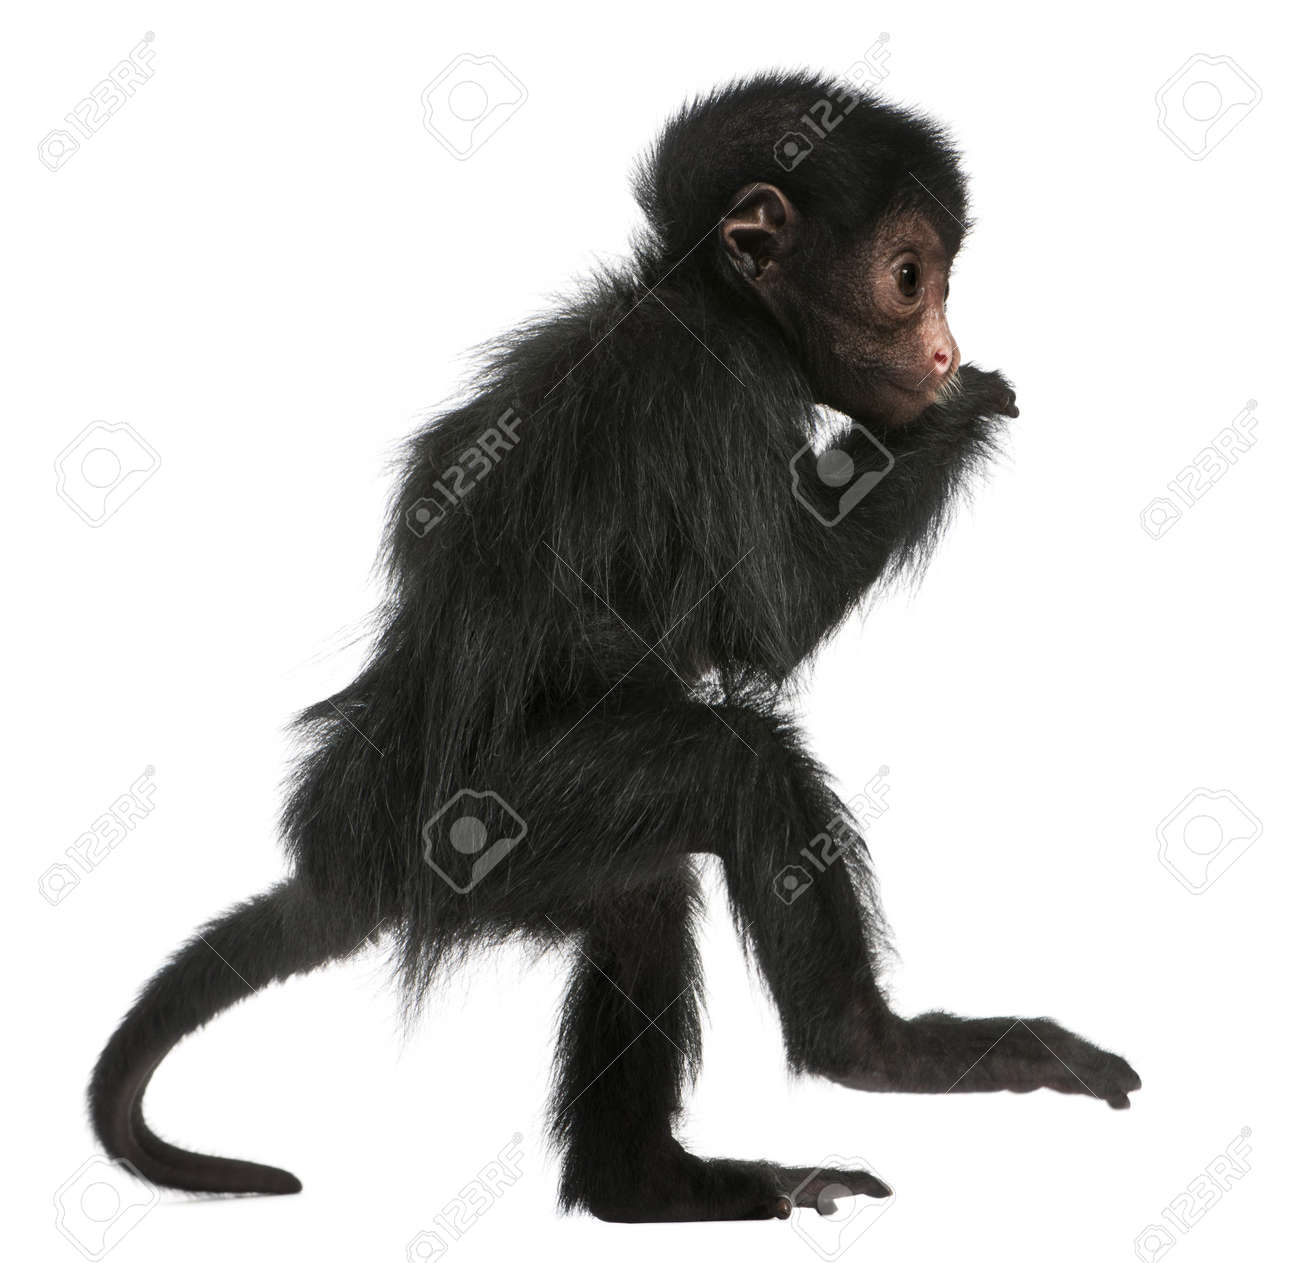 spider monkey images u0026 stock pictures royalty free spider monkey